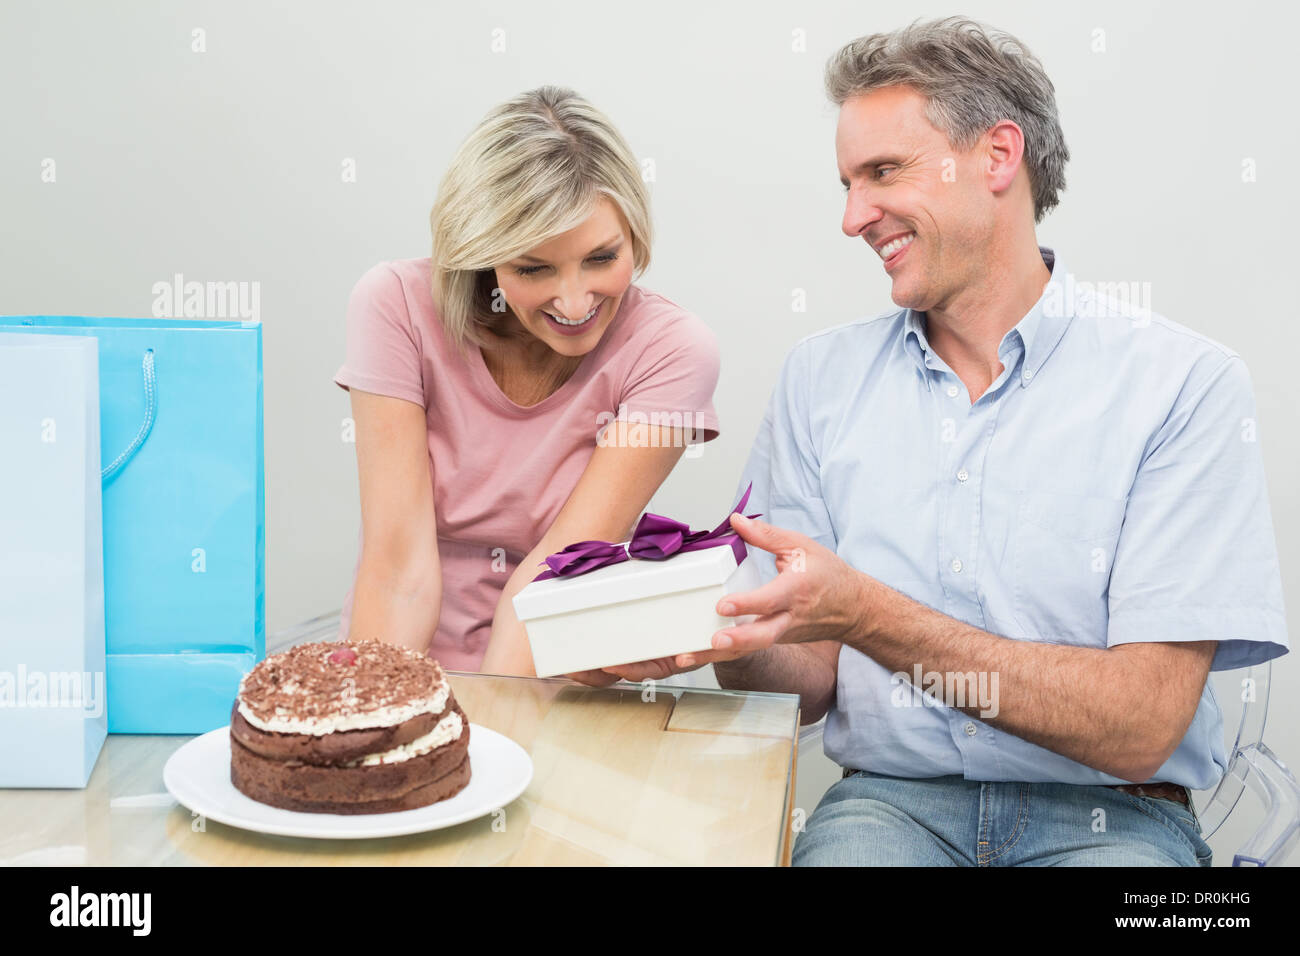 Man Giving A Happy Woman Birthday Gift Beside Cake